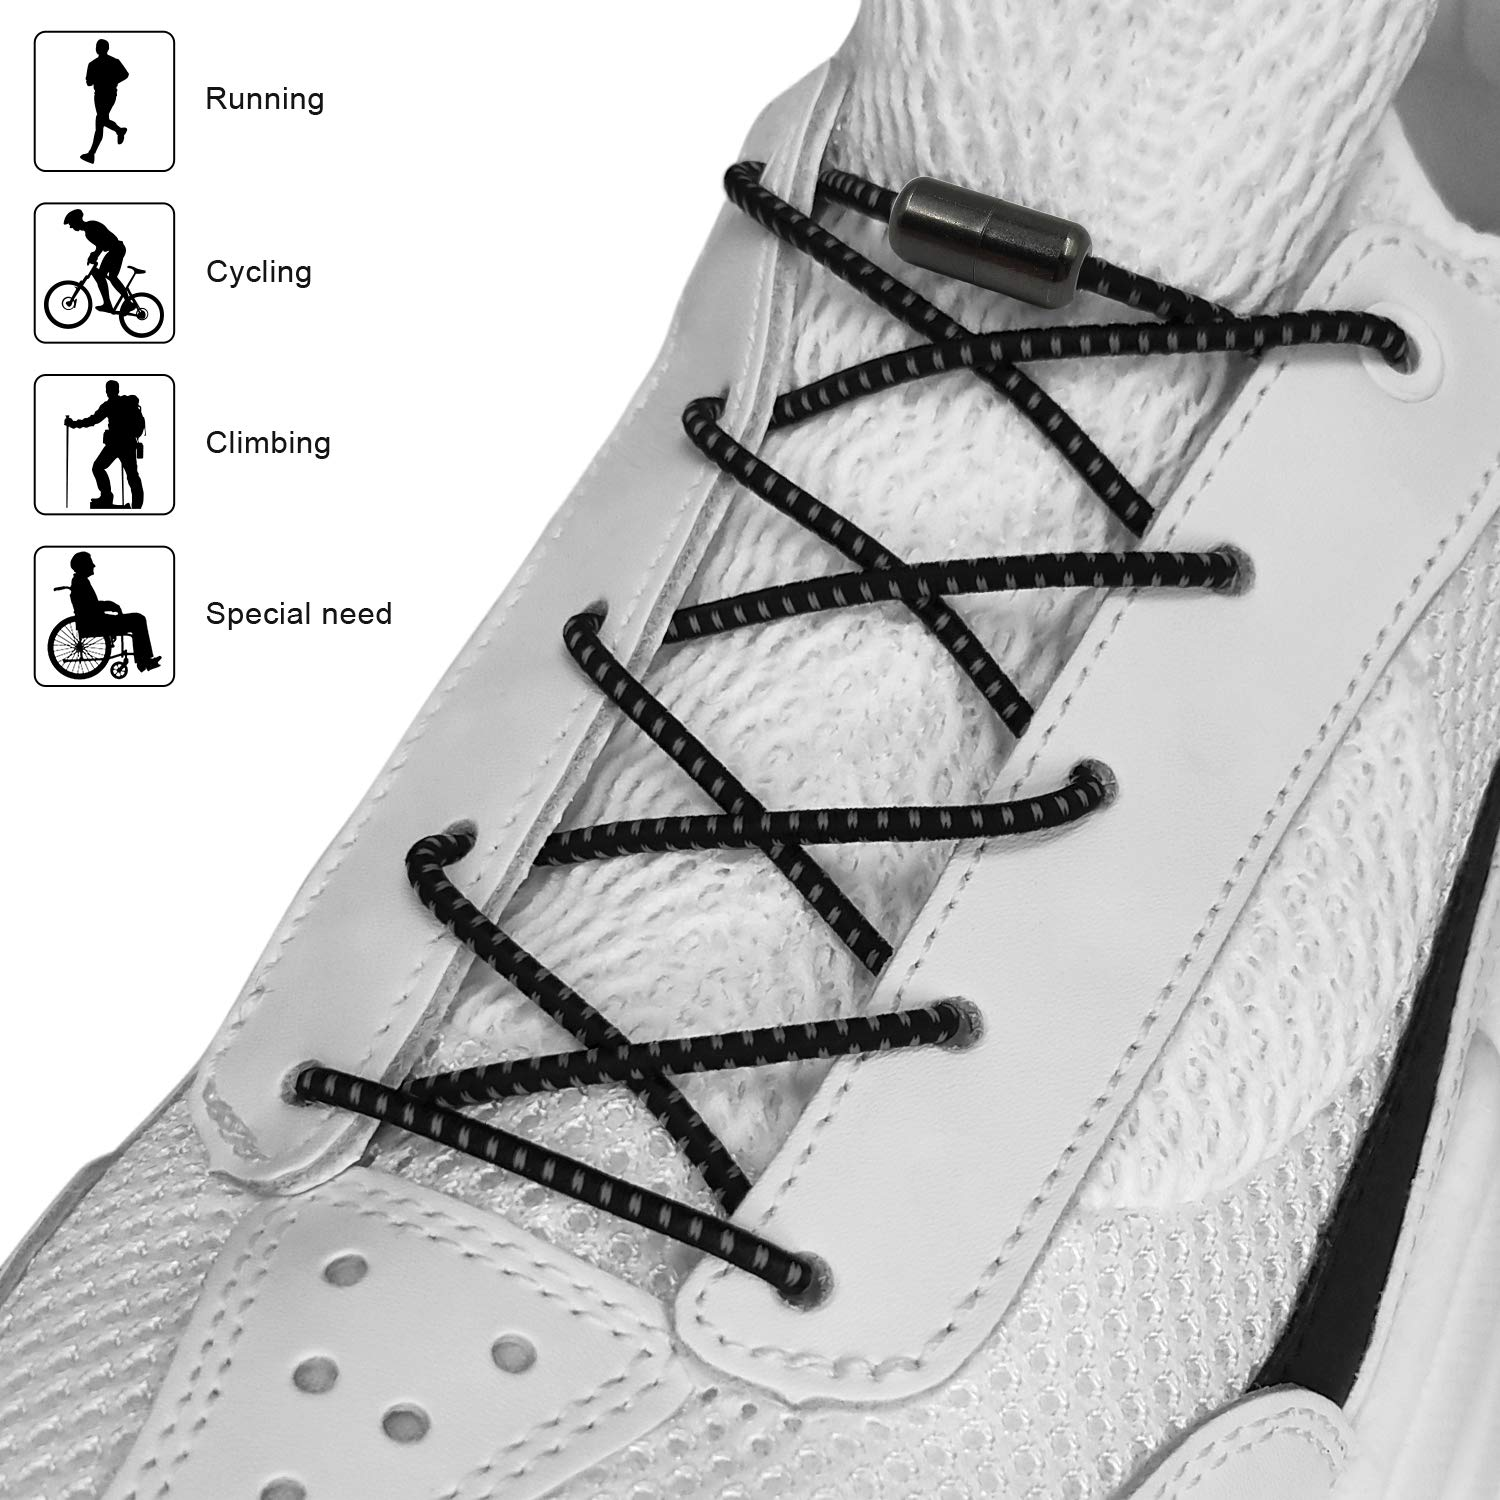 fbf34697110 CalMyotis Elastic Shoe Laces for Kids and Adults, No Tie Shoelaces with  Metal Turnbuckle for